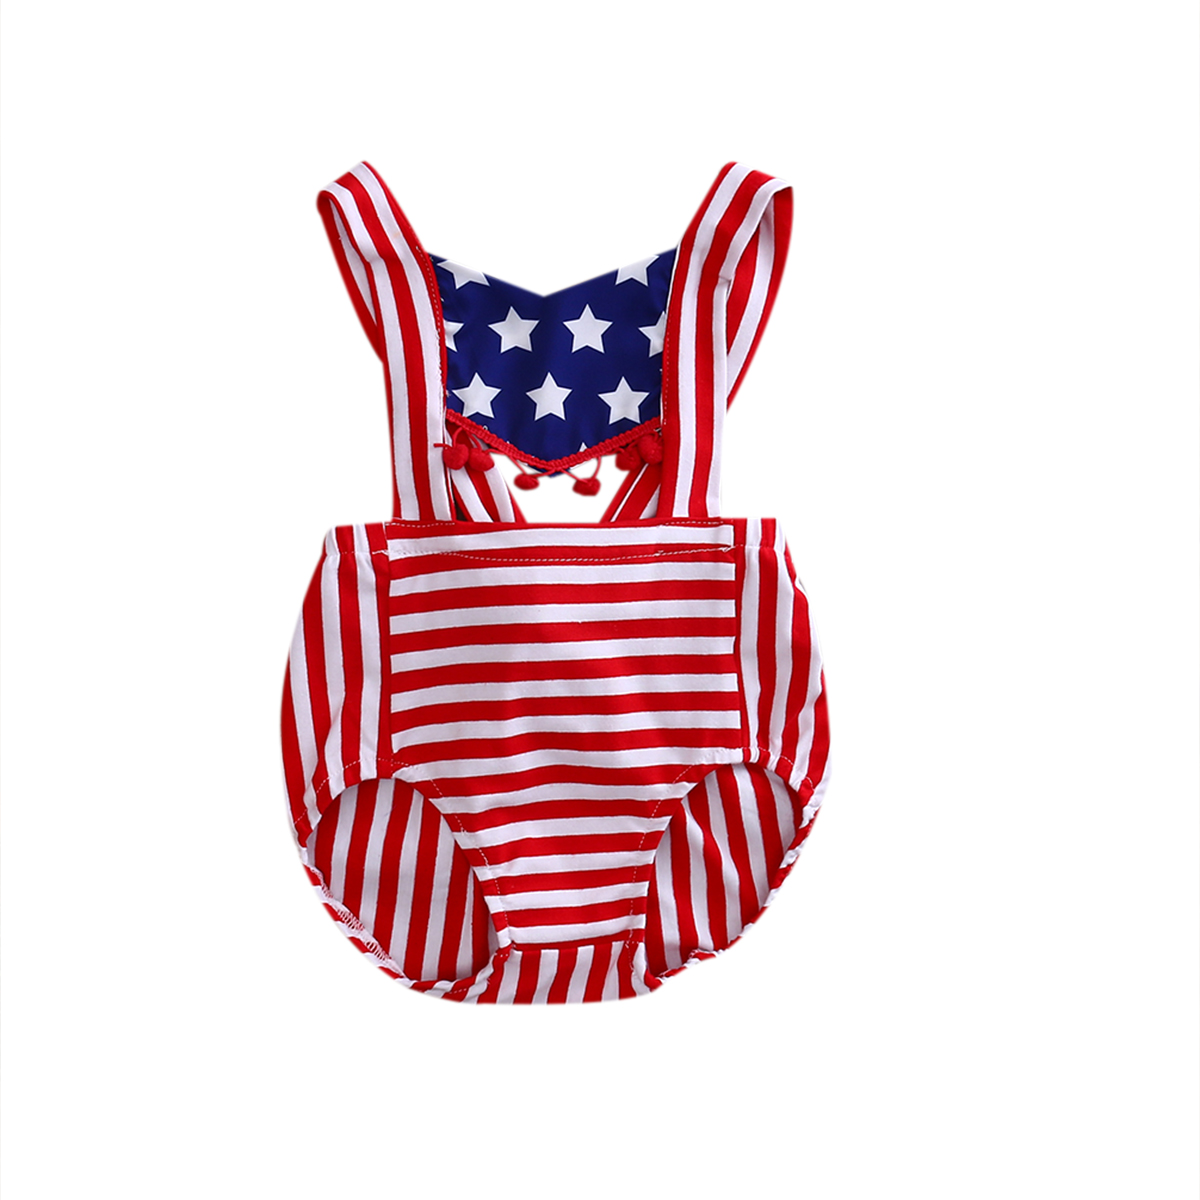 Summer Newborn Toddler Infant Baby Girl Romper Jumpsuit Striped Star Flag Romper Outfit Sunsuit Clothes newborn infant baby girl clothes strap lace floral romper jumpsuit outfit summer cotton backless one pieces outfit baby onesie